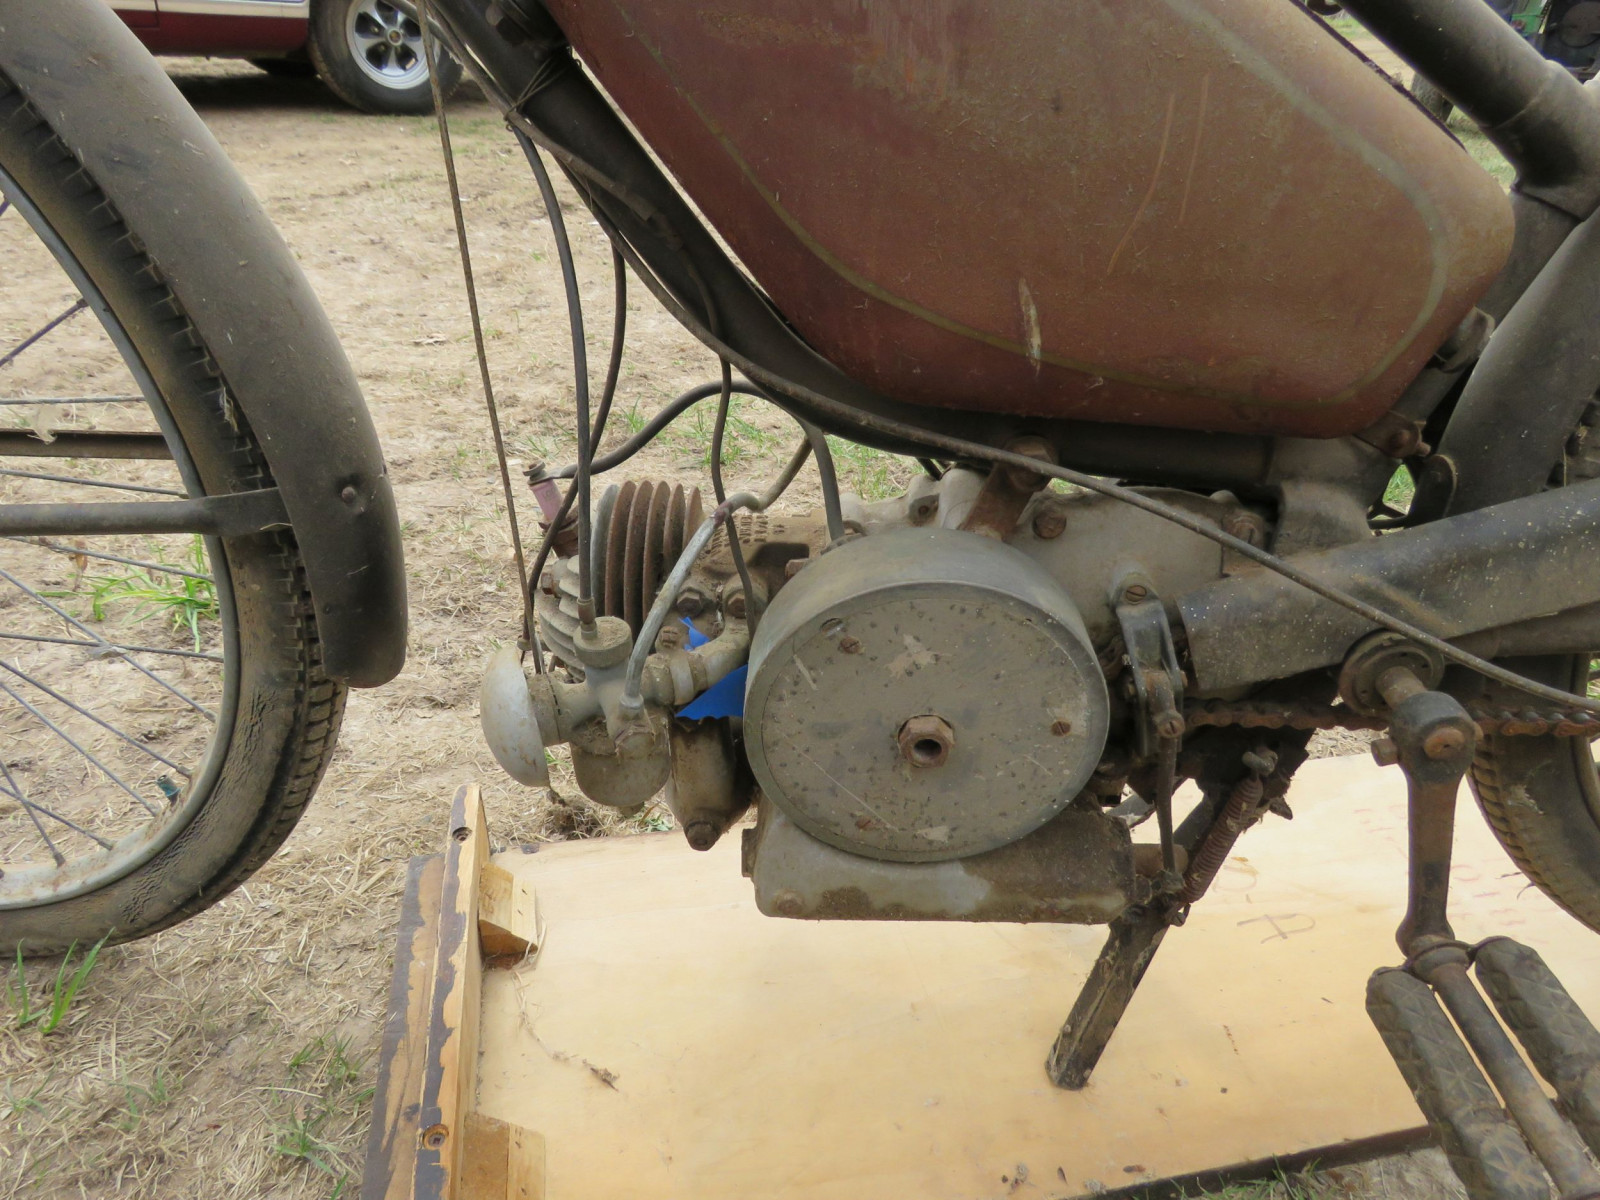 Rare Villiers Junior Motorcycle - Image 3